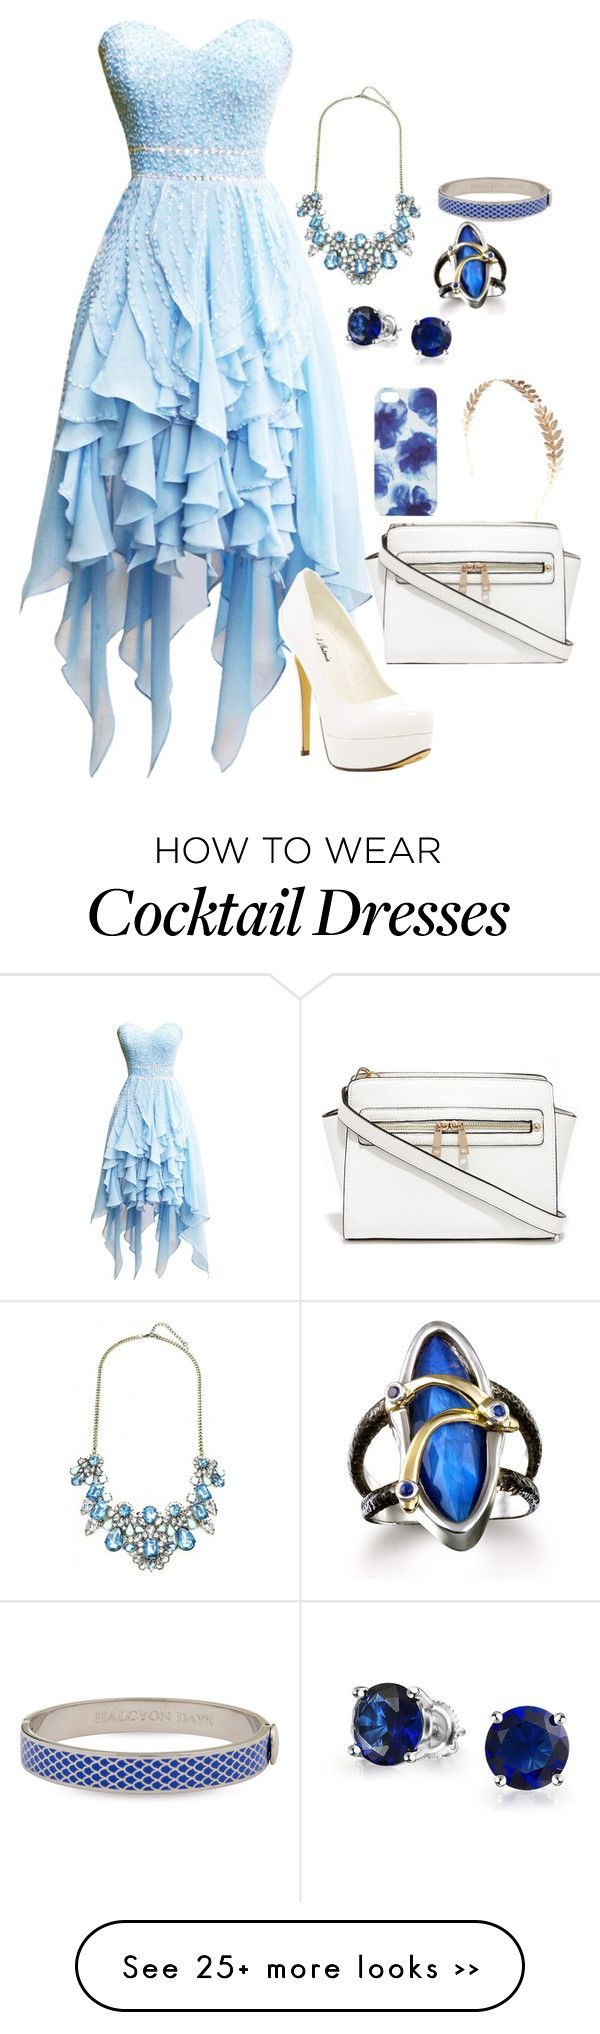 """""""Untitled #5"""" by jellywiththebread on Polyvore featuring Michael Antonio, Jigsaw, Wet Seal, Bling Jewelry and Halcyon Days"""